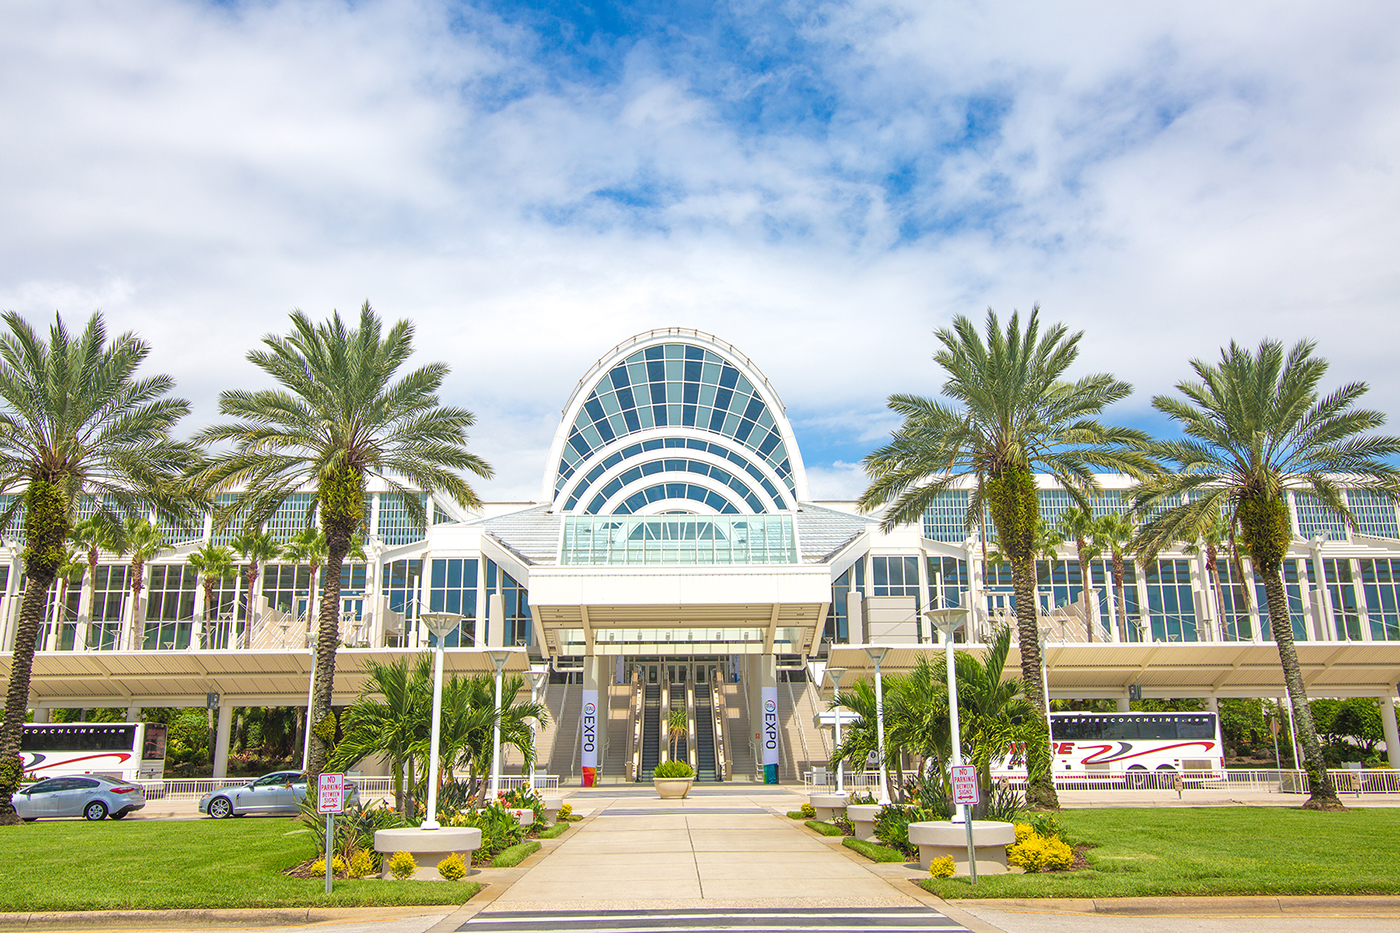 Orange County Convention Center Welcomes the Industrial Fabrics Association International Expo for the Fifth Time and Lauds $11.3 million Economic Impact